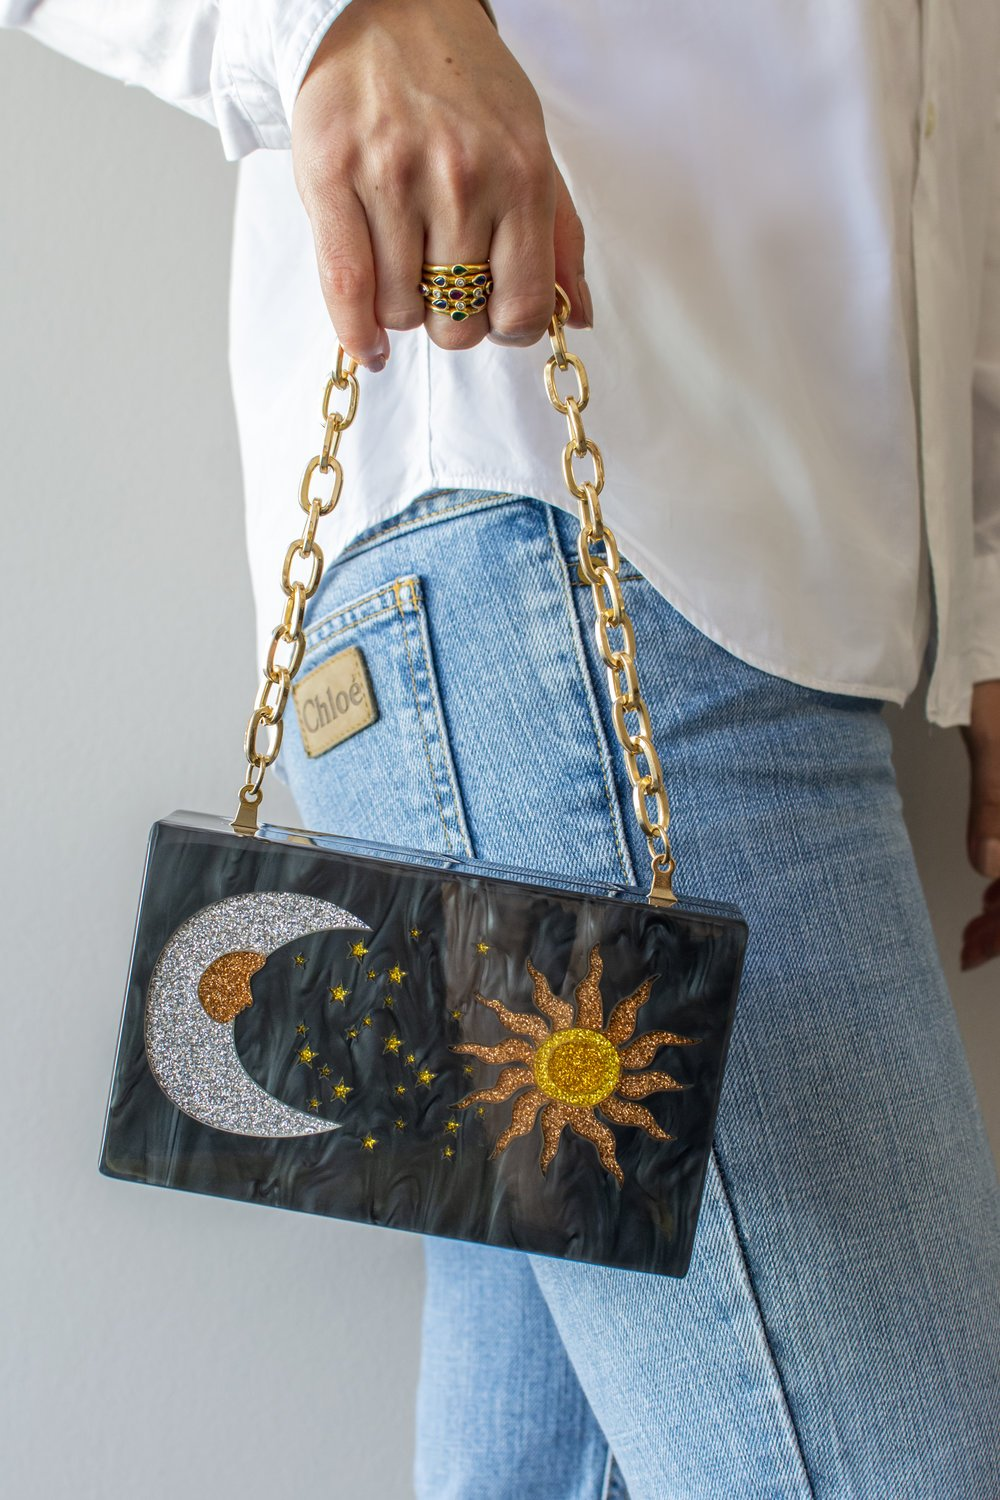 THE GALAXY BAG